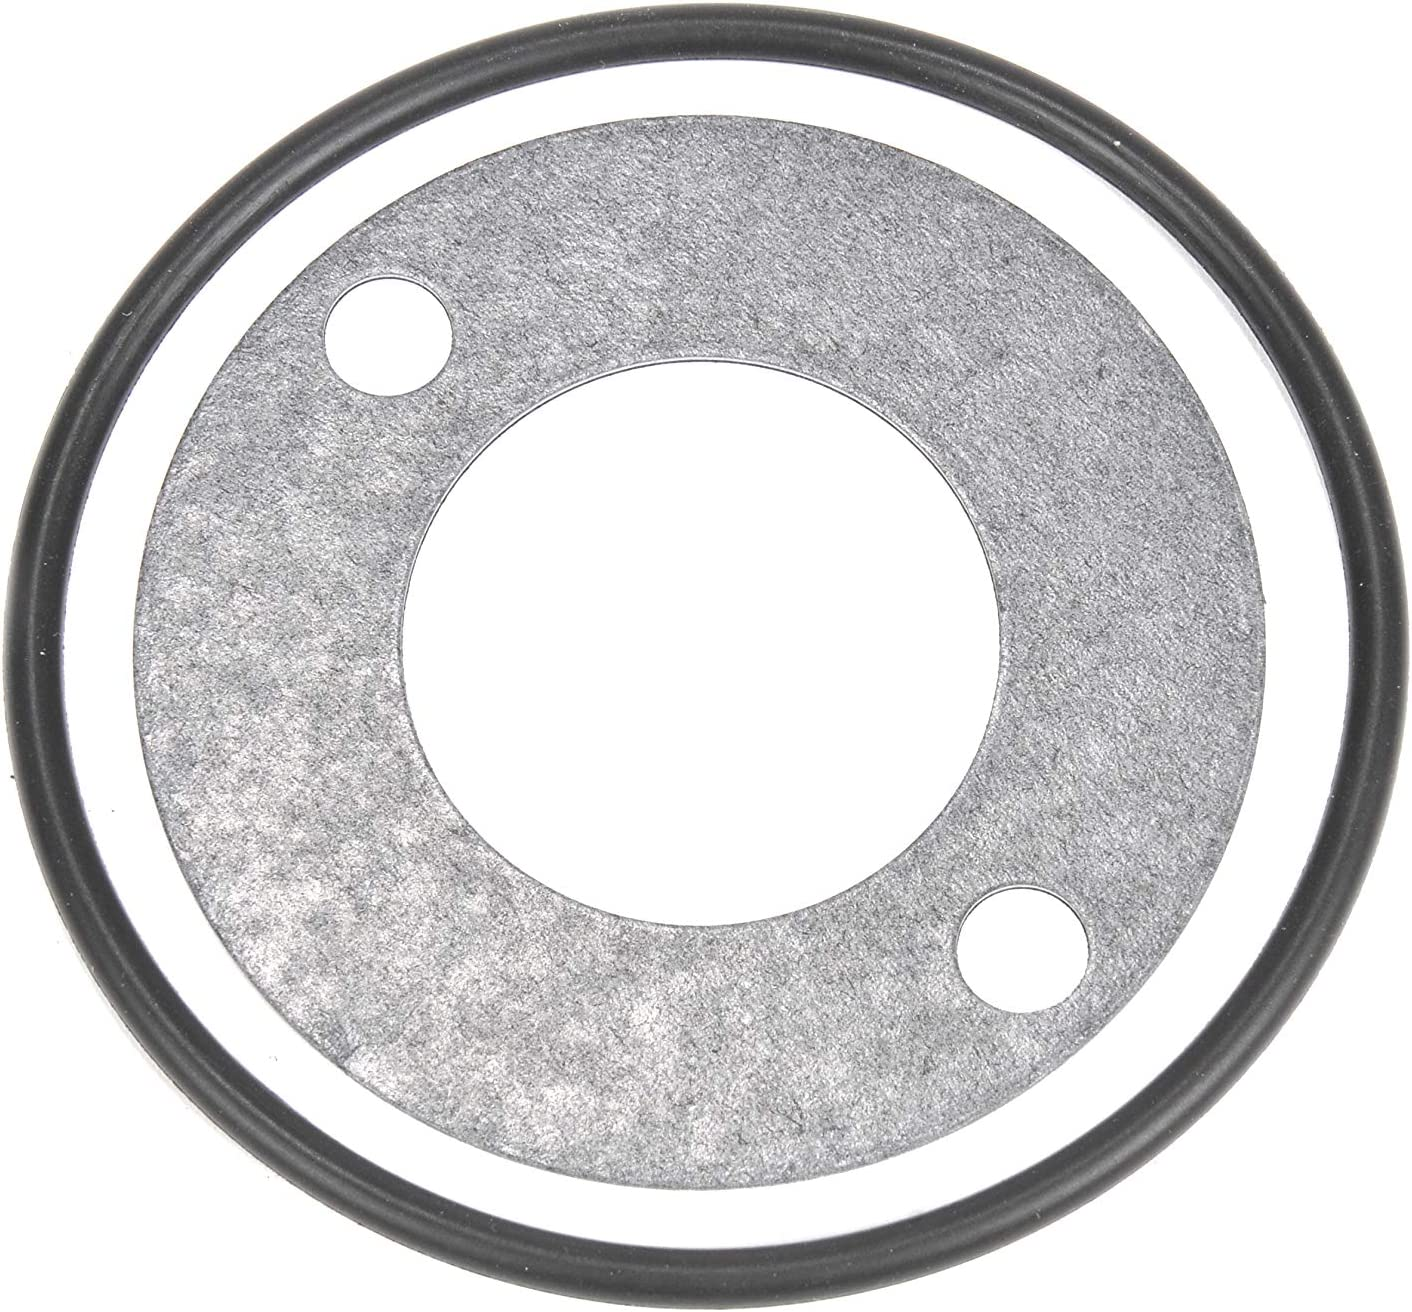 ACDELCO  12607947 Oil Filter Adapter Gasket